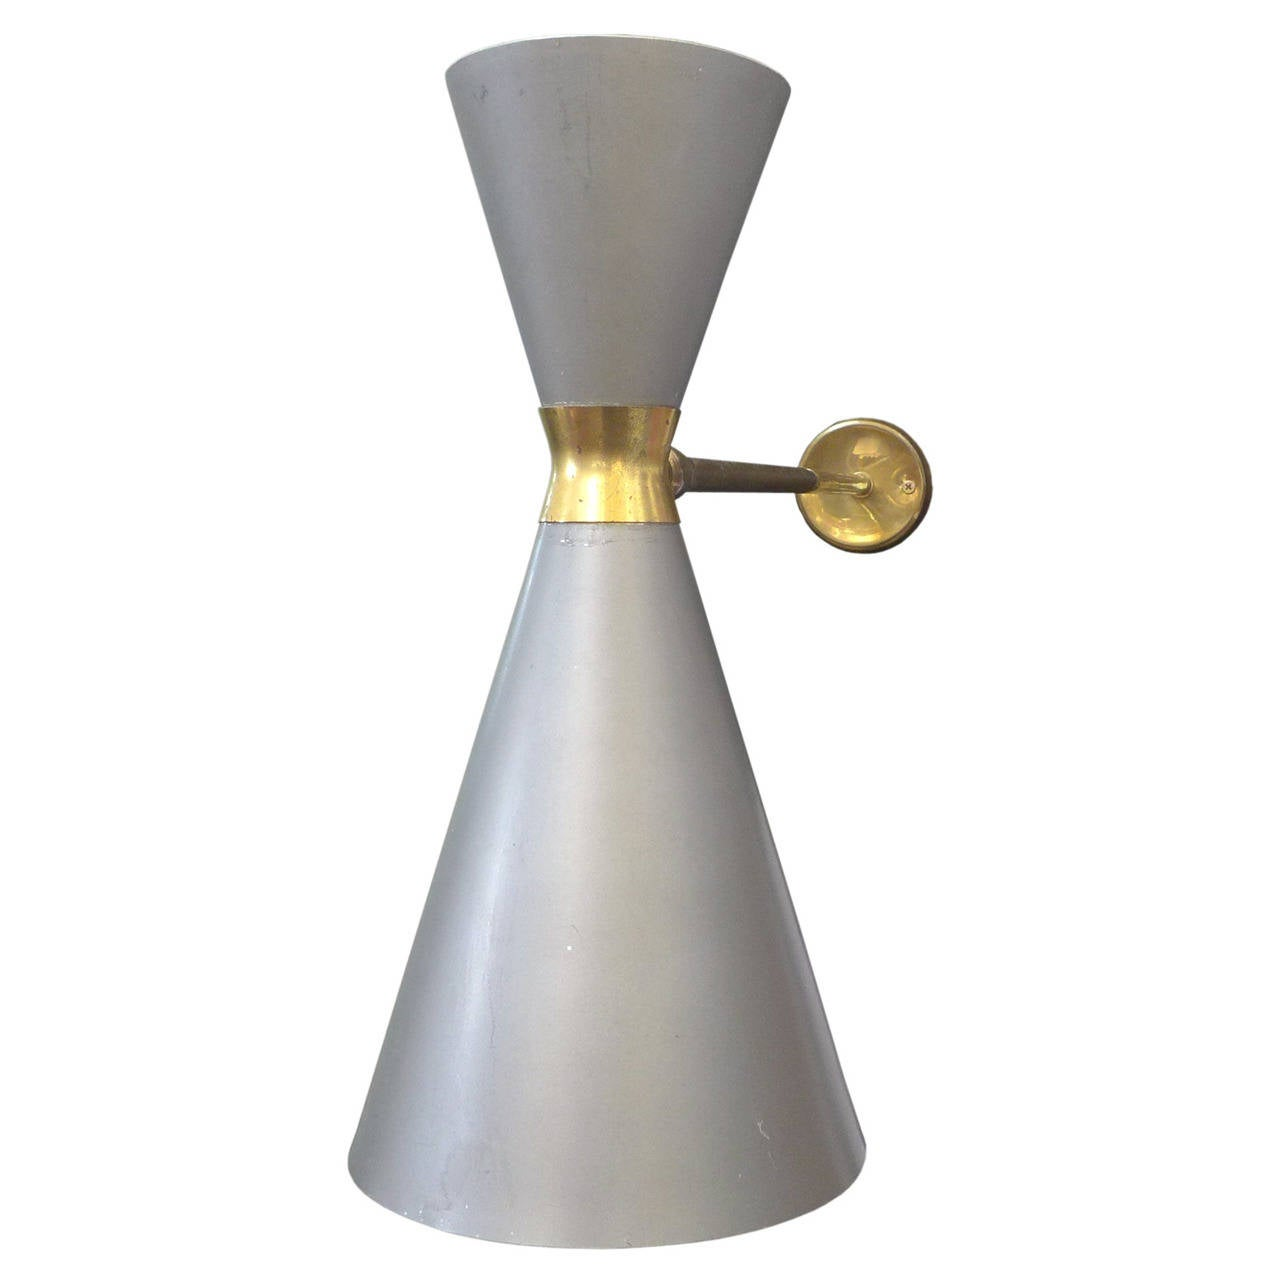 Double Light Wall Sconces : European Double-Cone Wall Sconce For Sale at 1stdibs